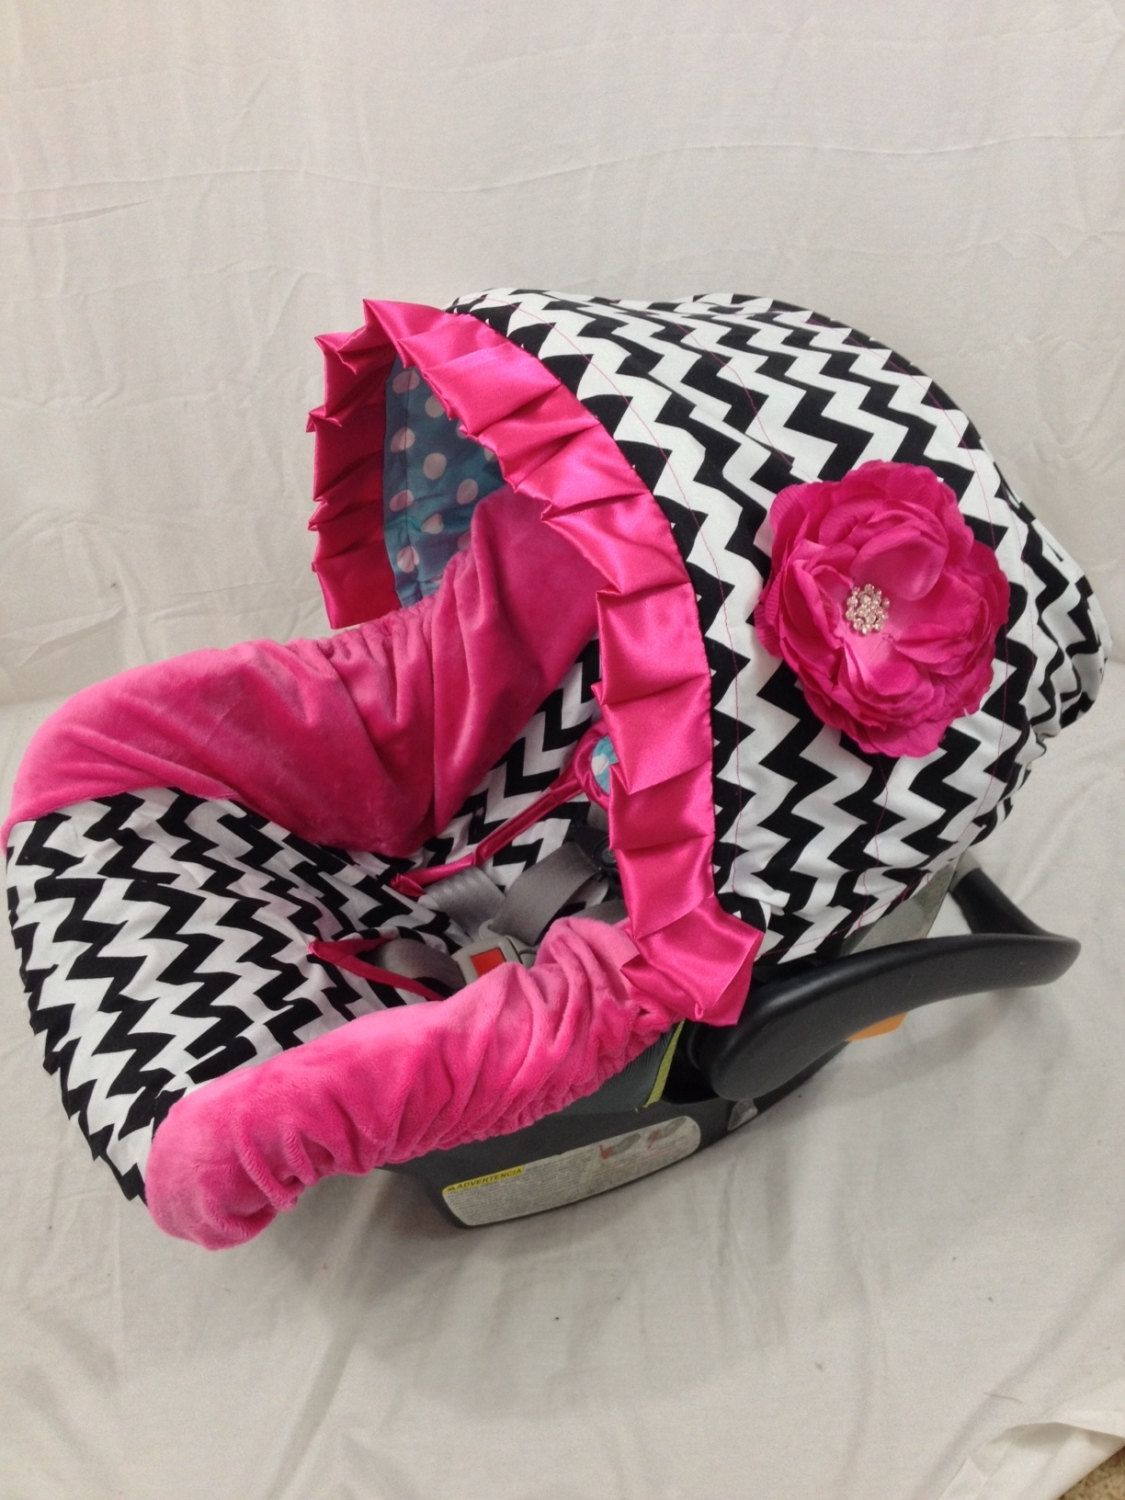 Infant Car Seat Cover, Baby Car Seat Cover including